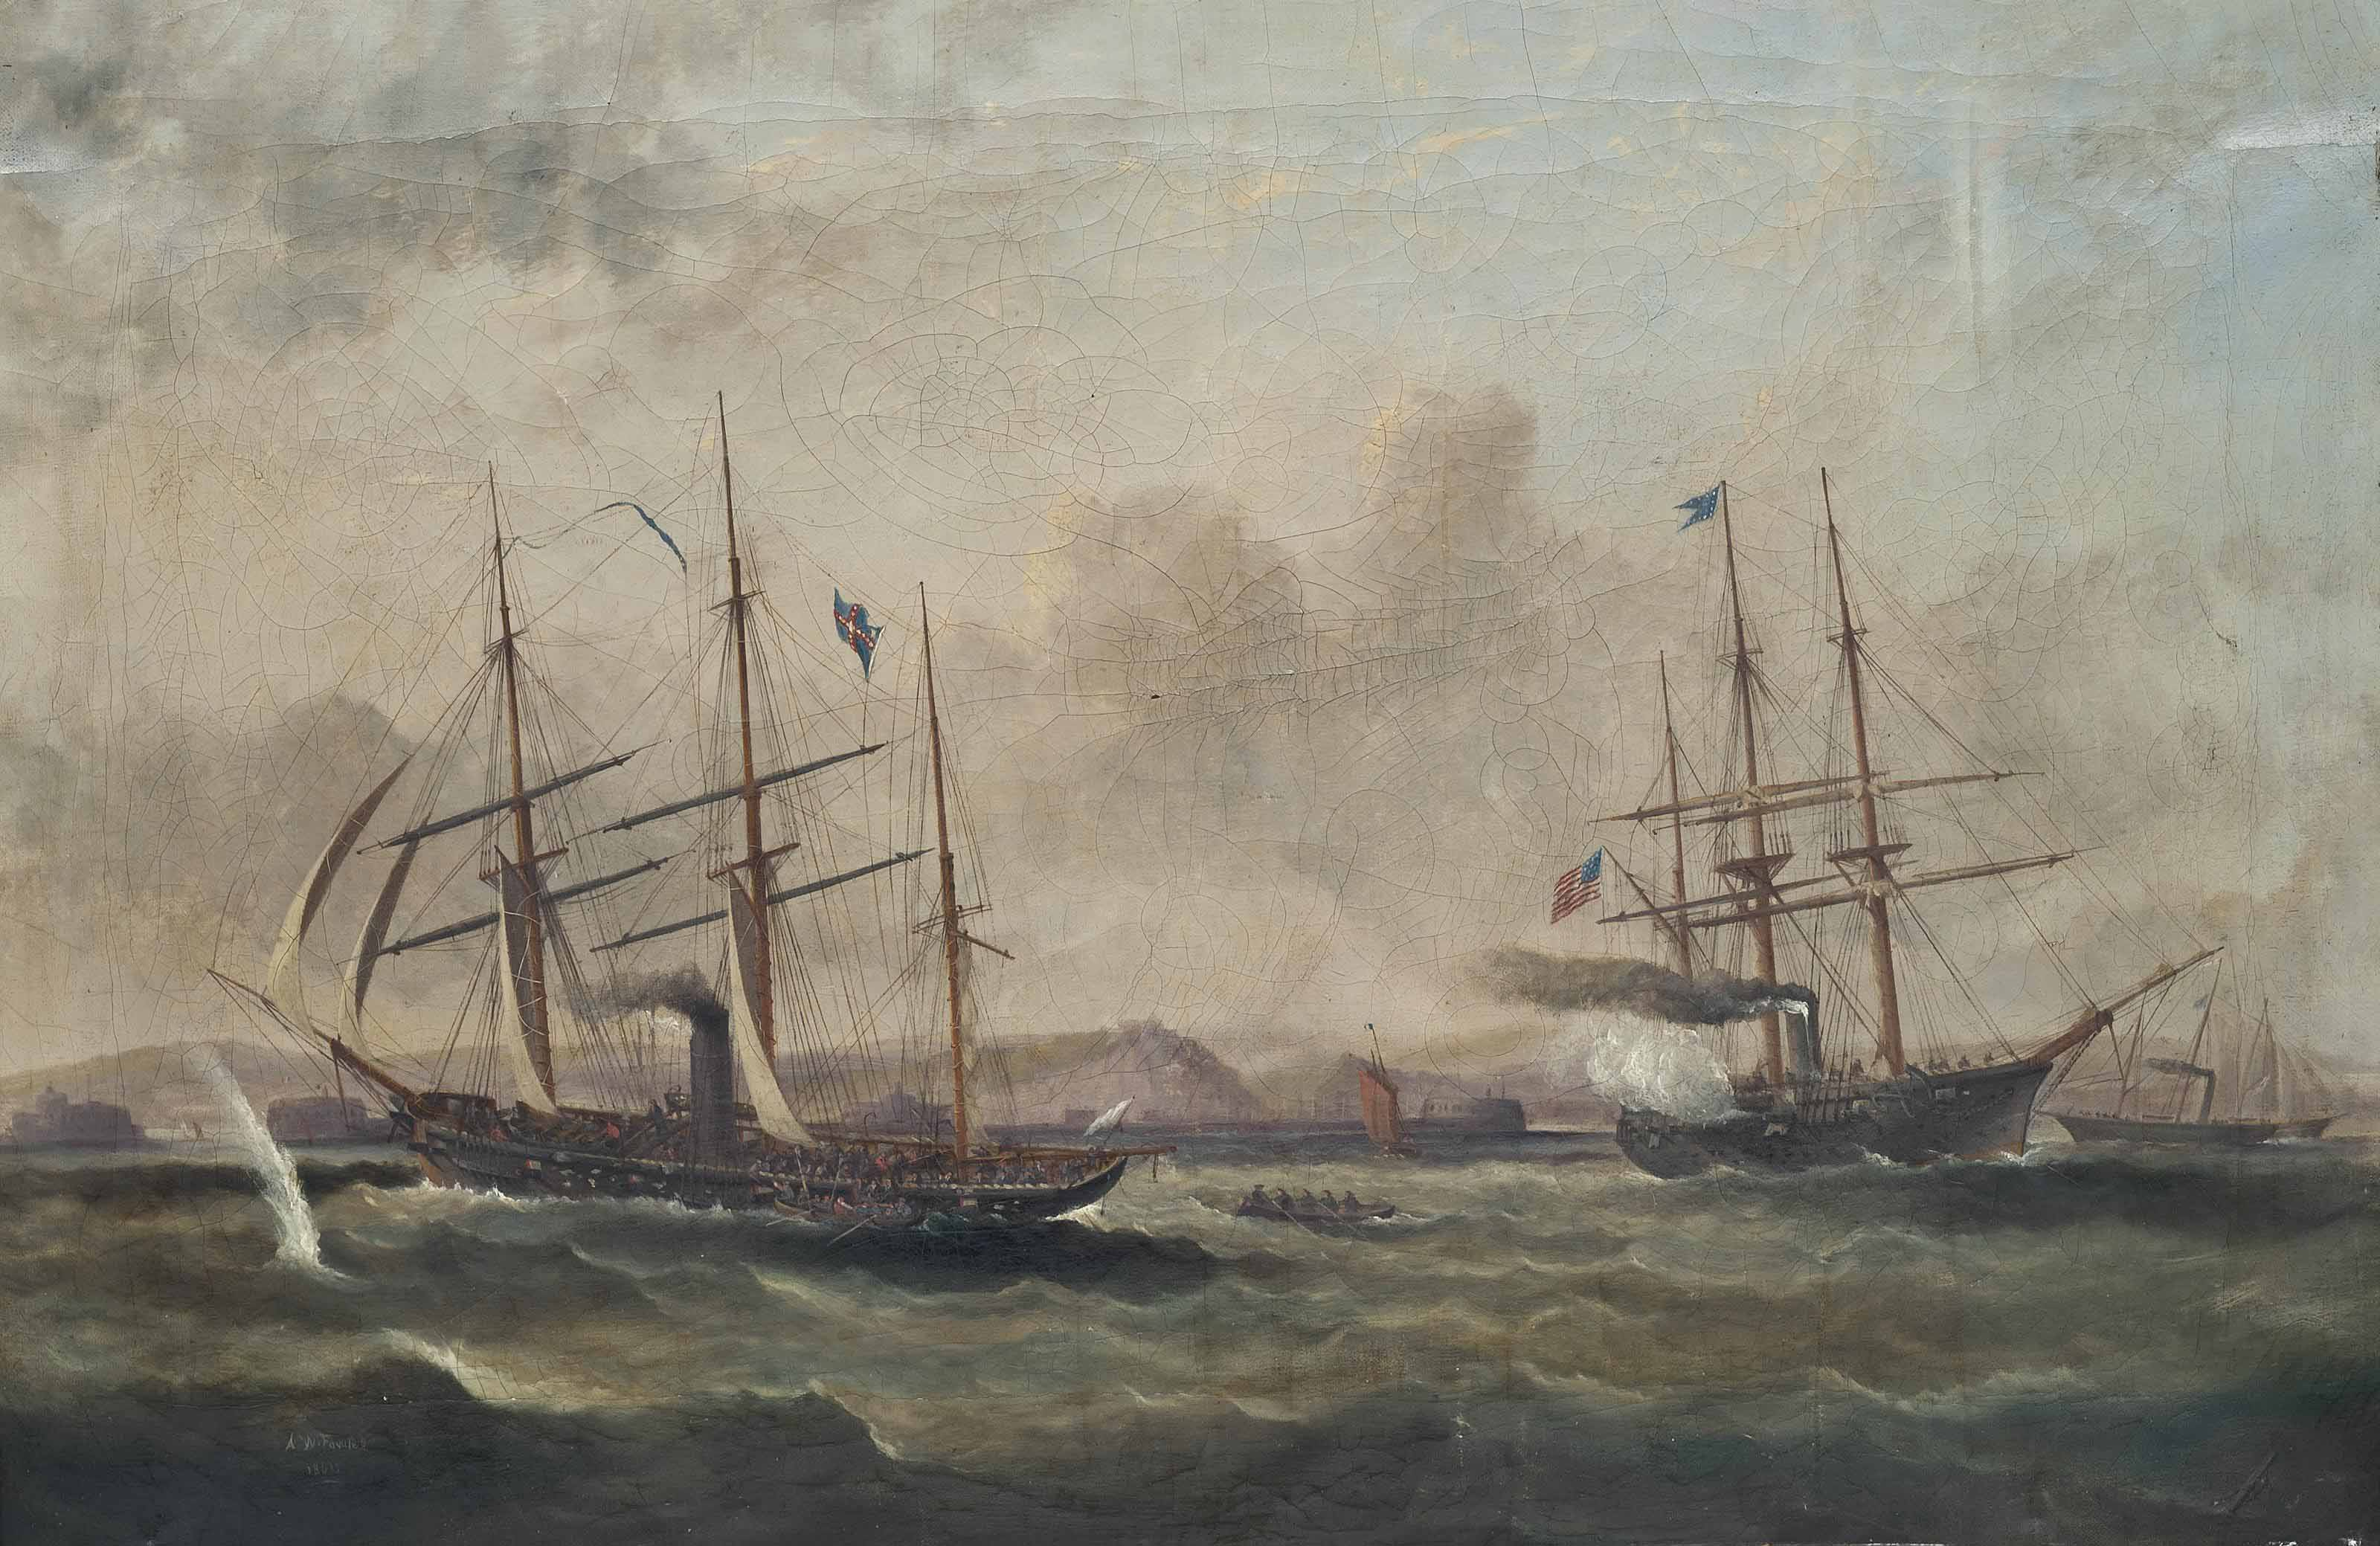 The celebrated engagement between the confederate raider C.S.S. Alabama and U.S.S. Kearsage, 19th June 1864